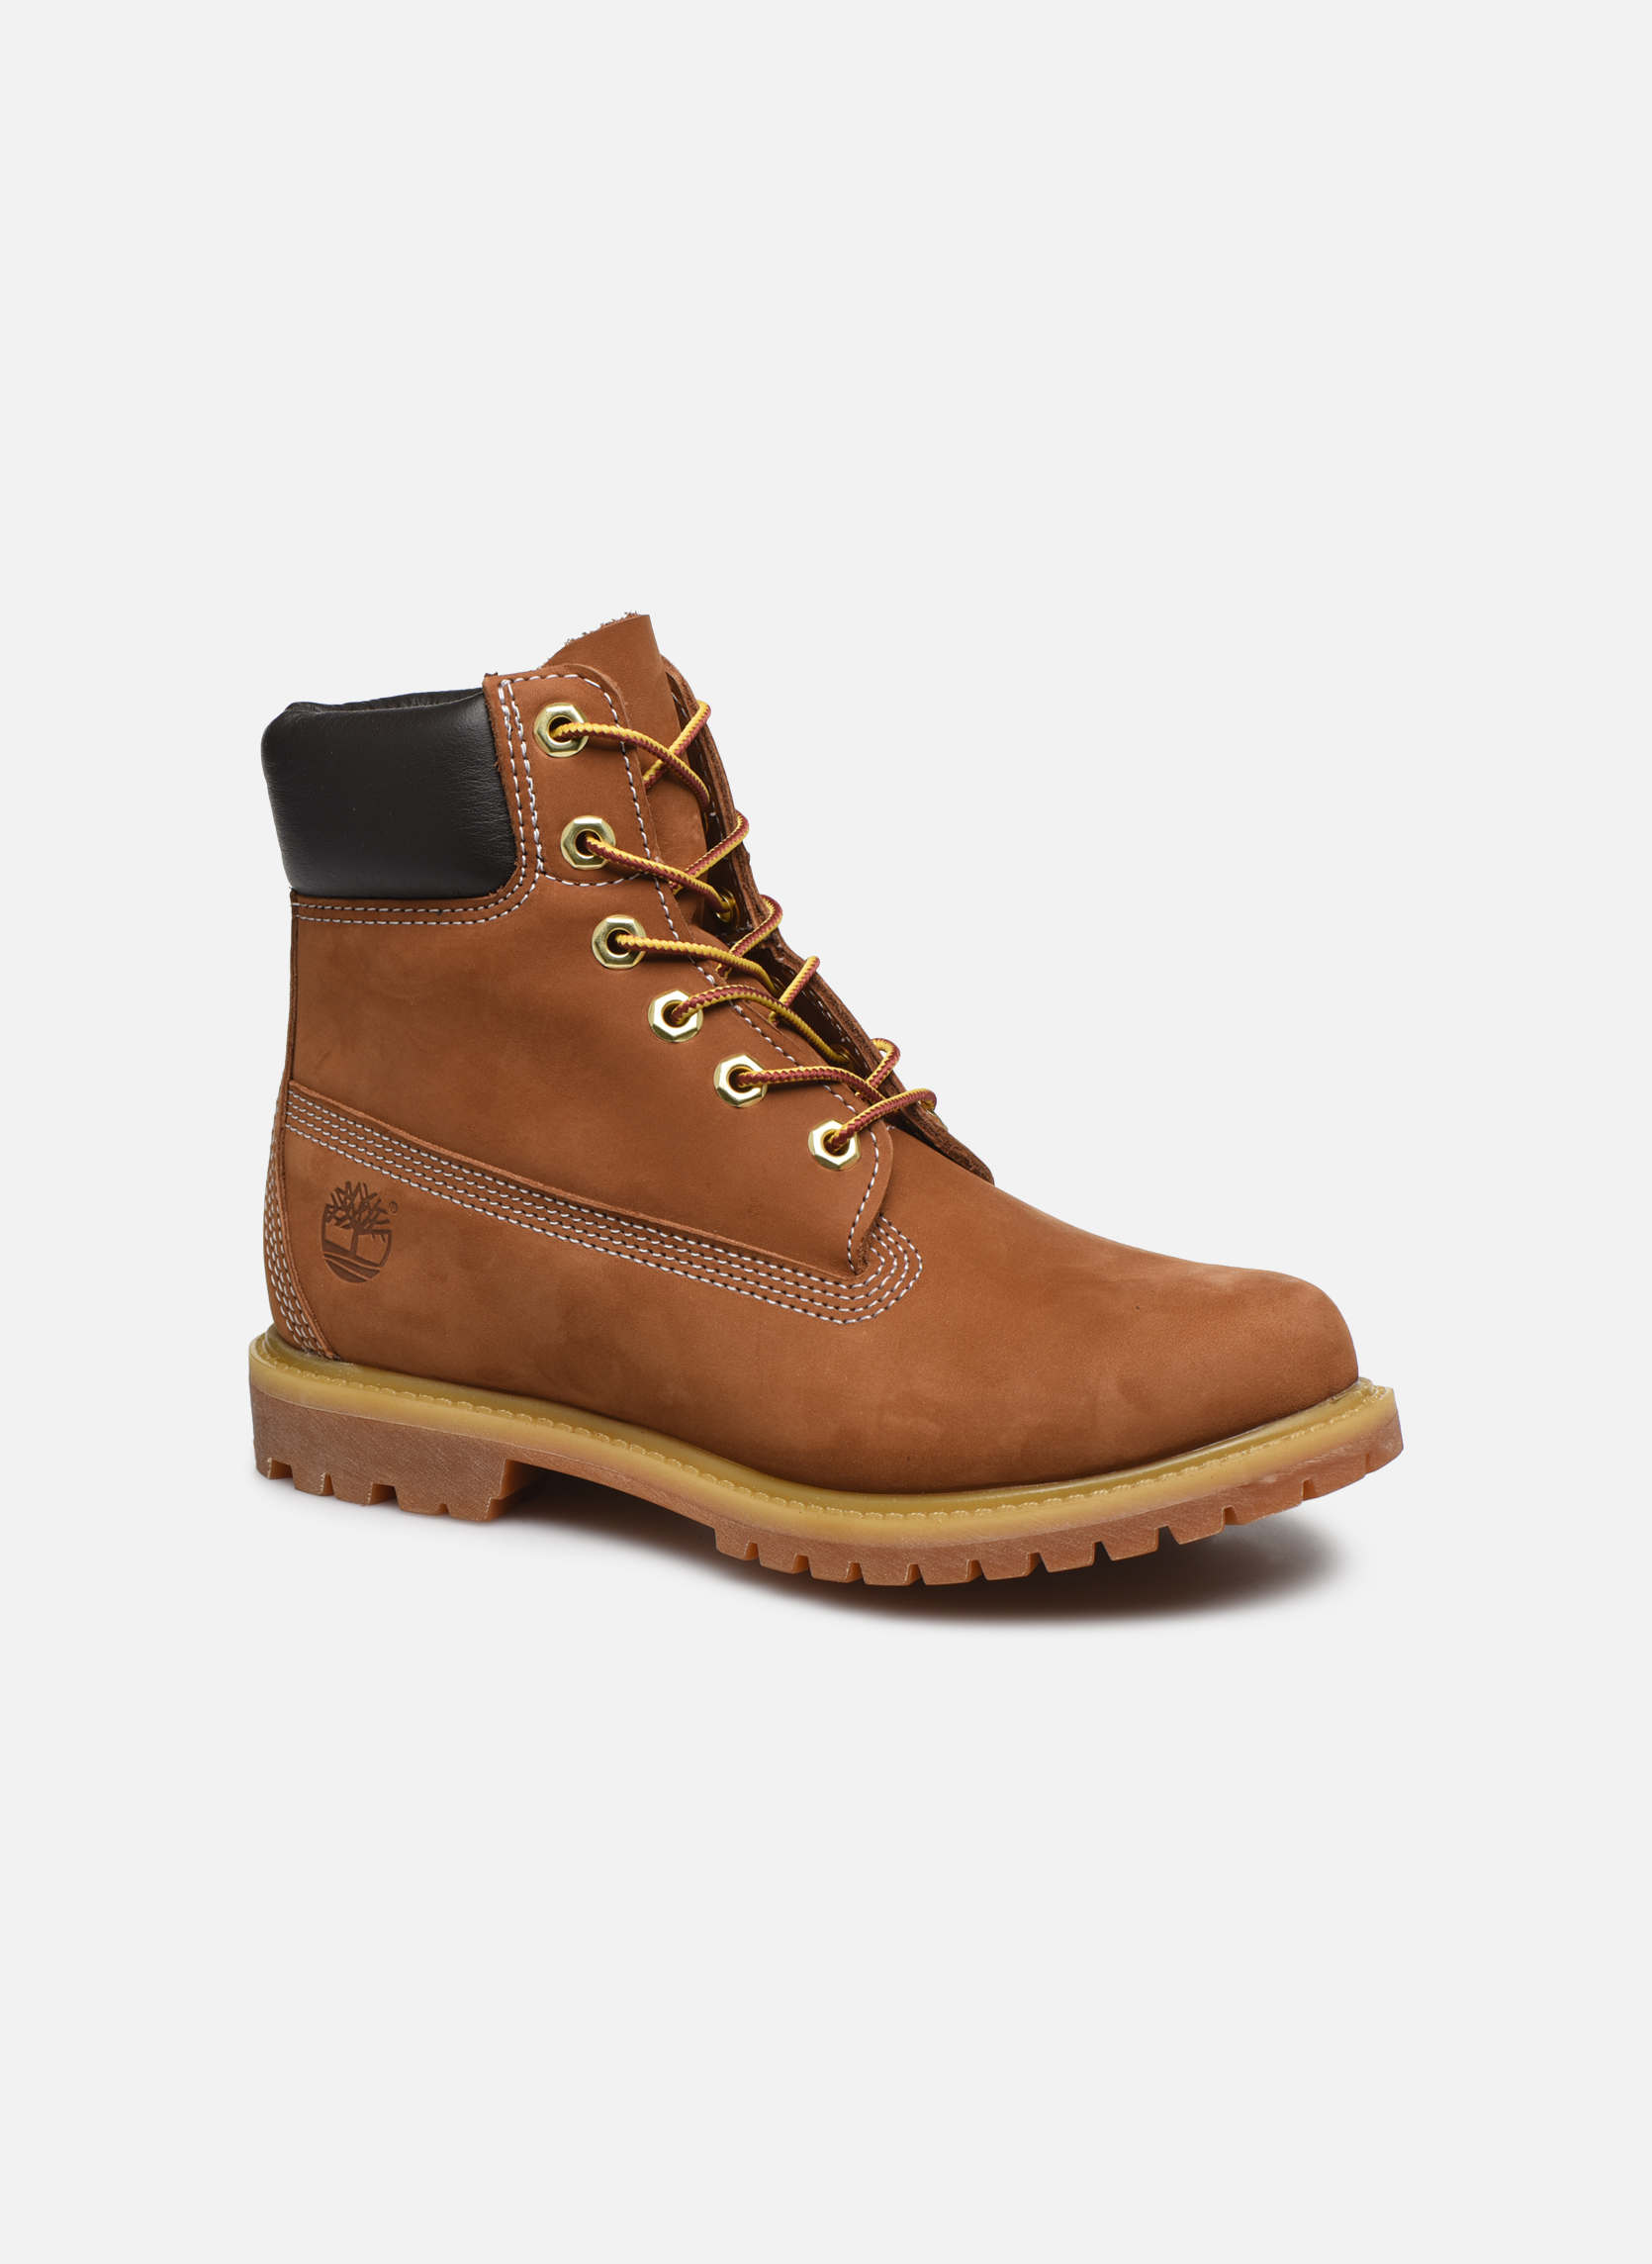 Timberland 6 in premium boot w